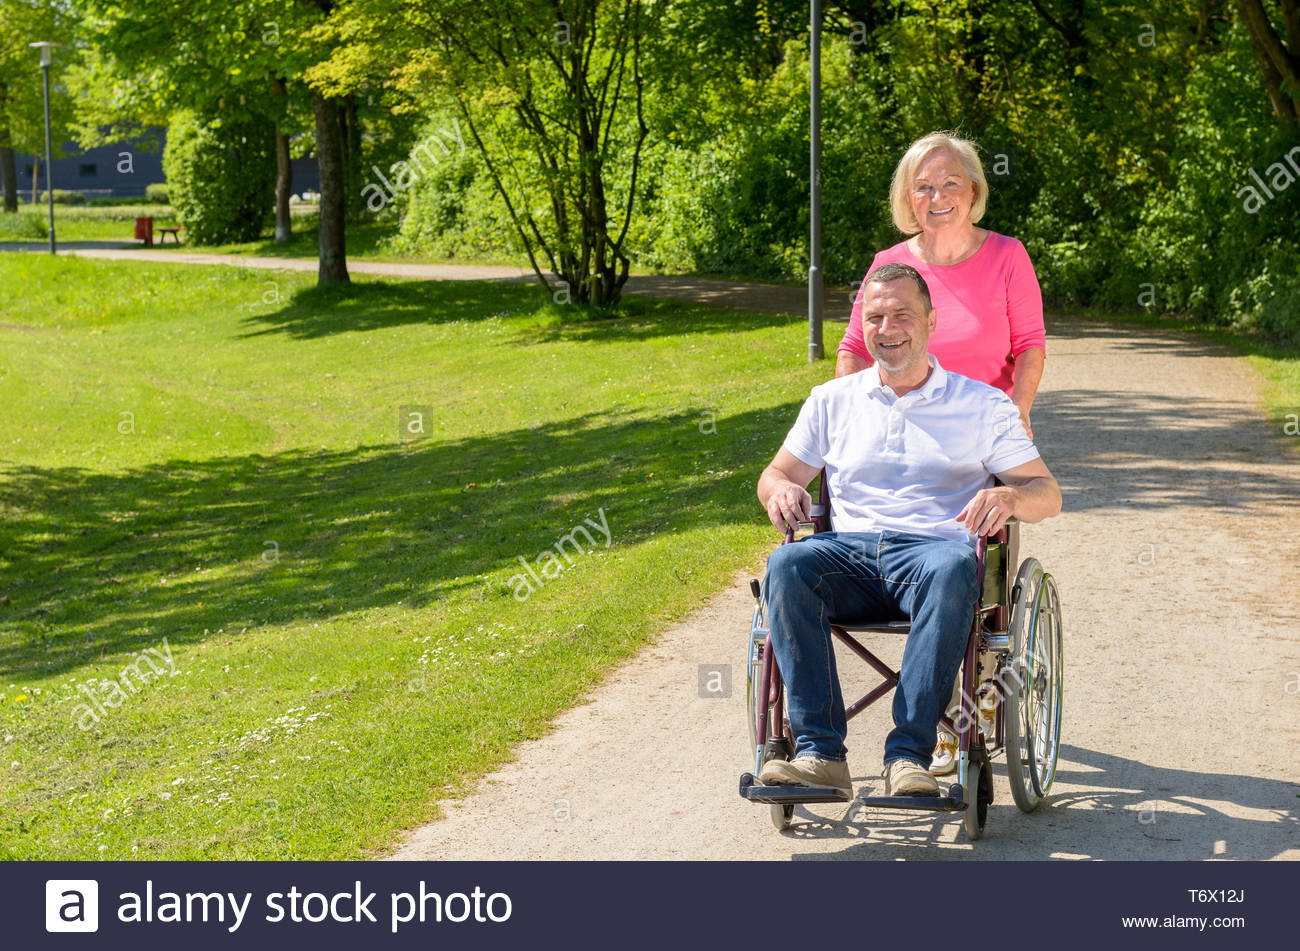 Man seated in wheel chair while wife pushes Stock Photo